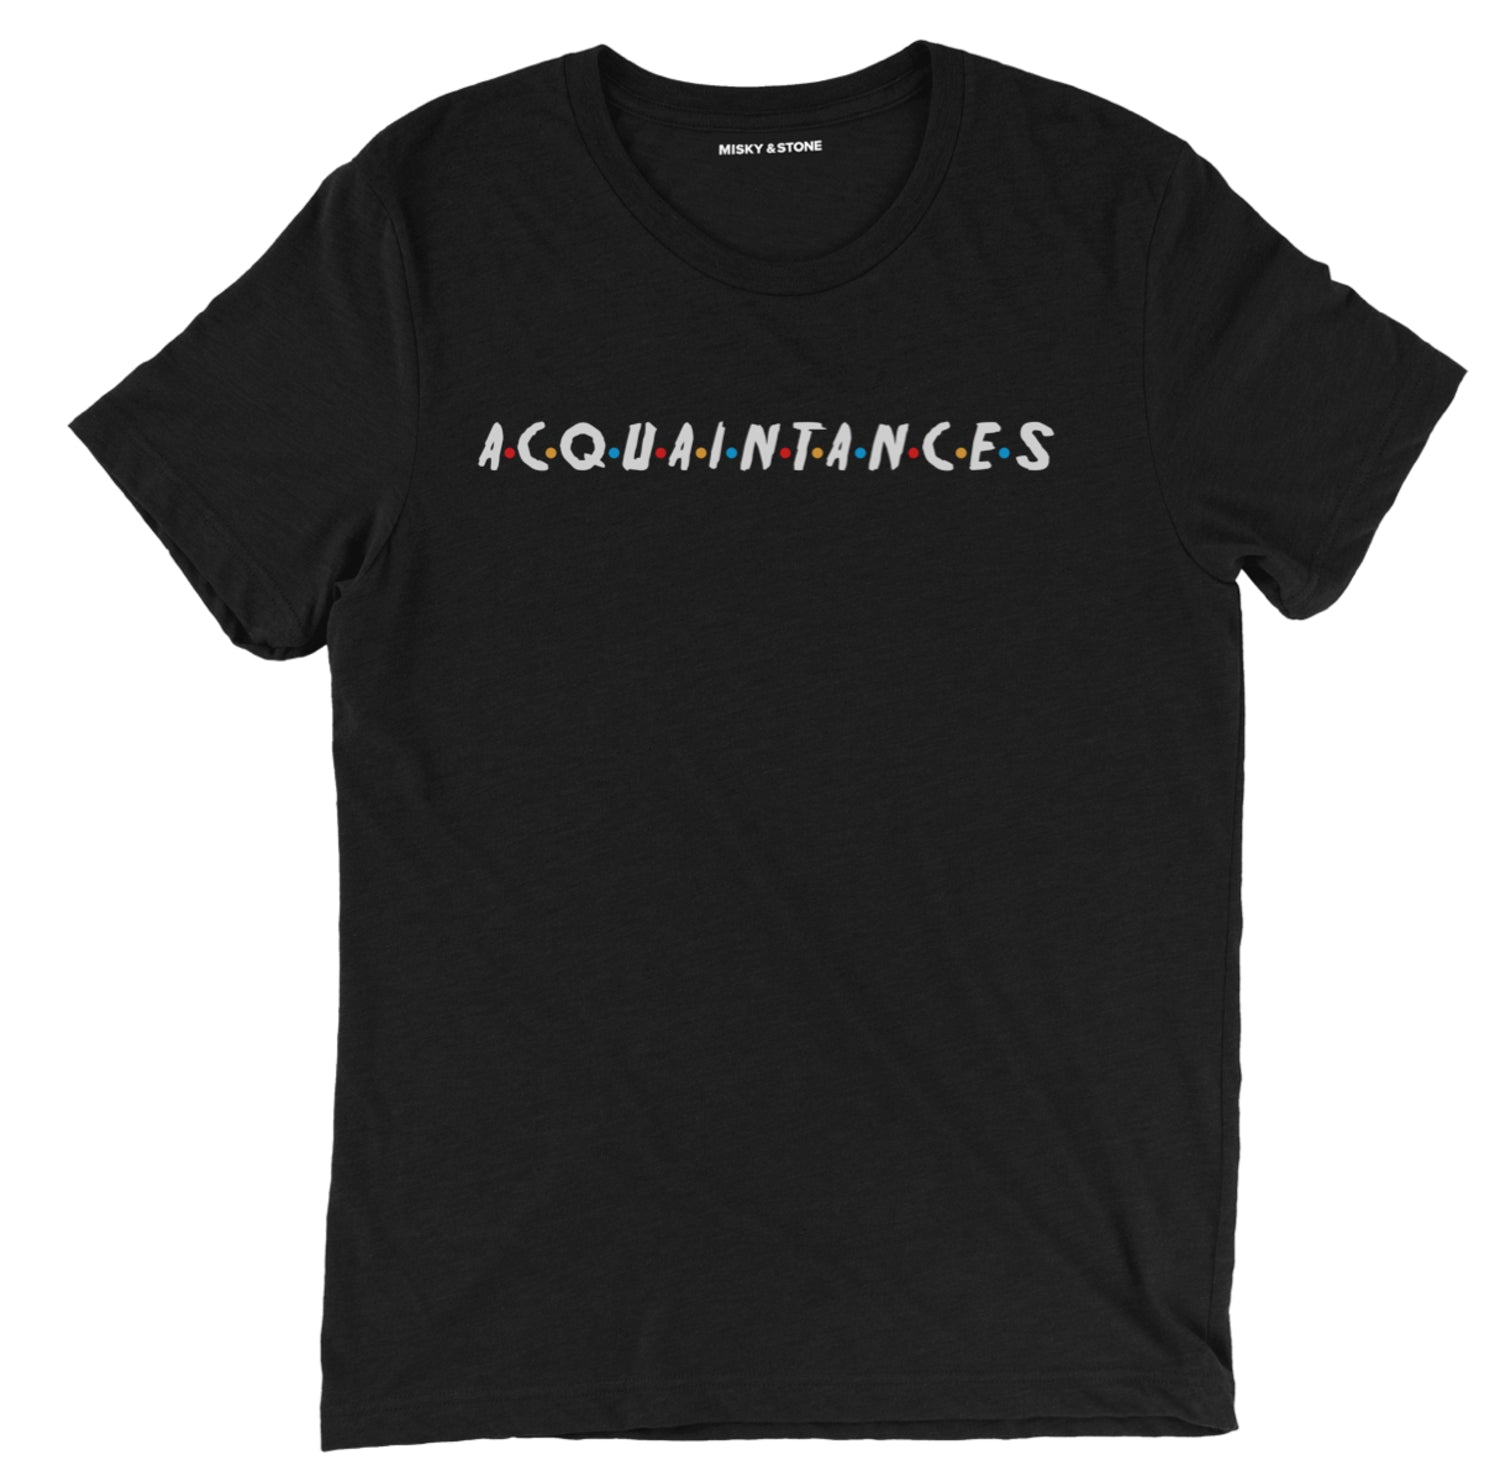 Acquaintances Tee